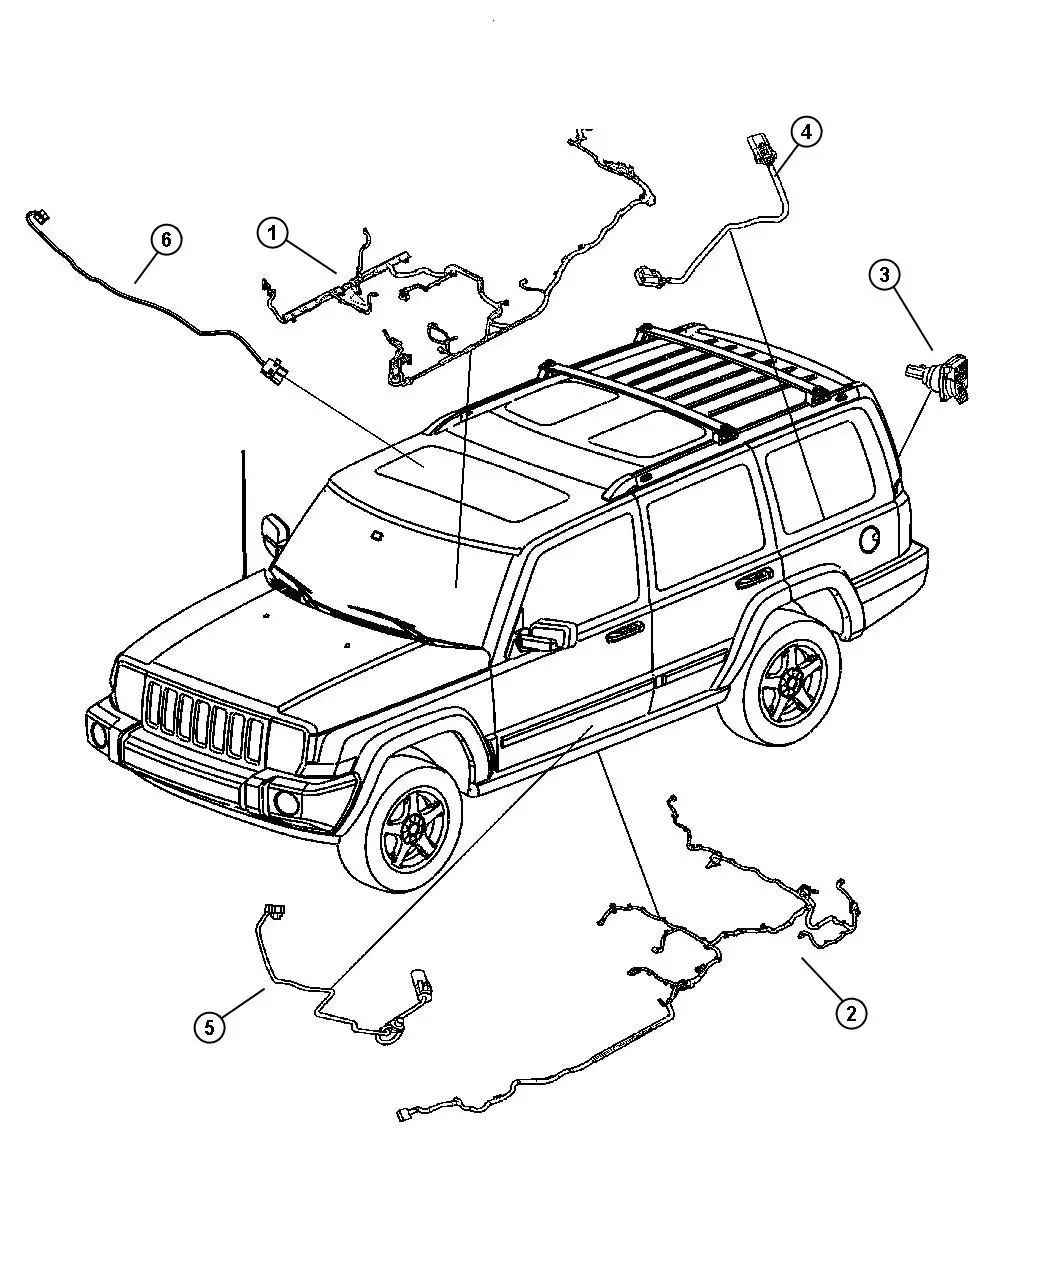 2007 jeep commander battery wiring diagram